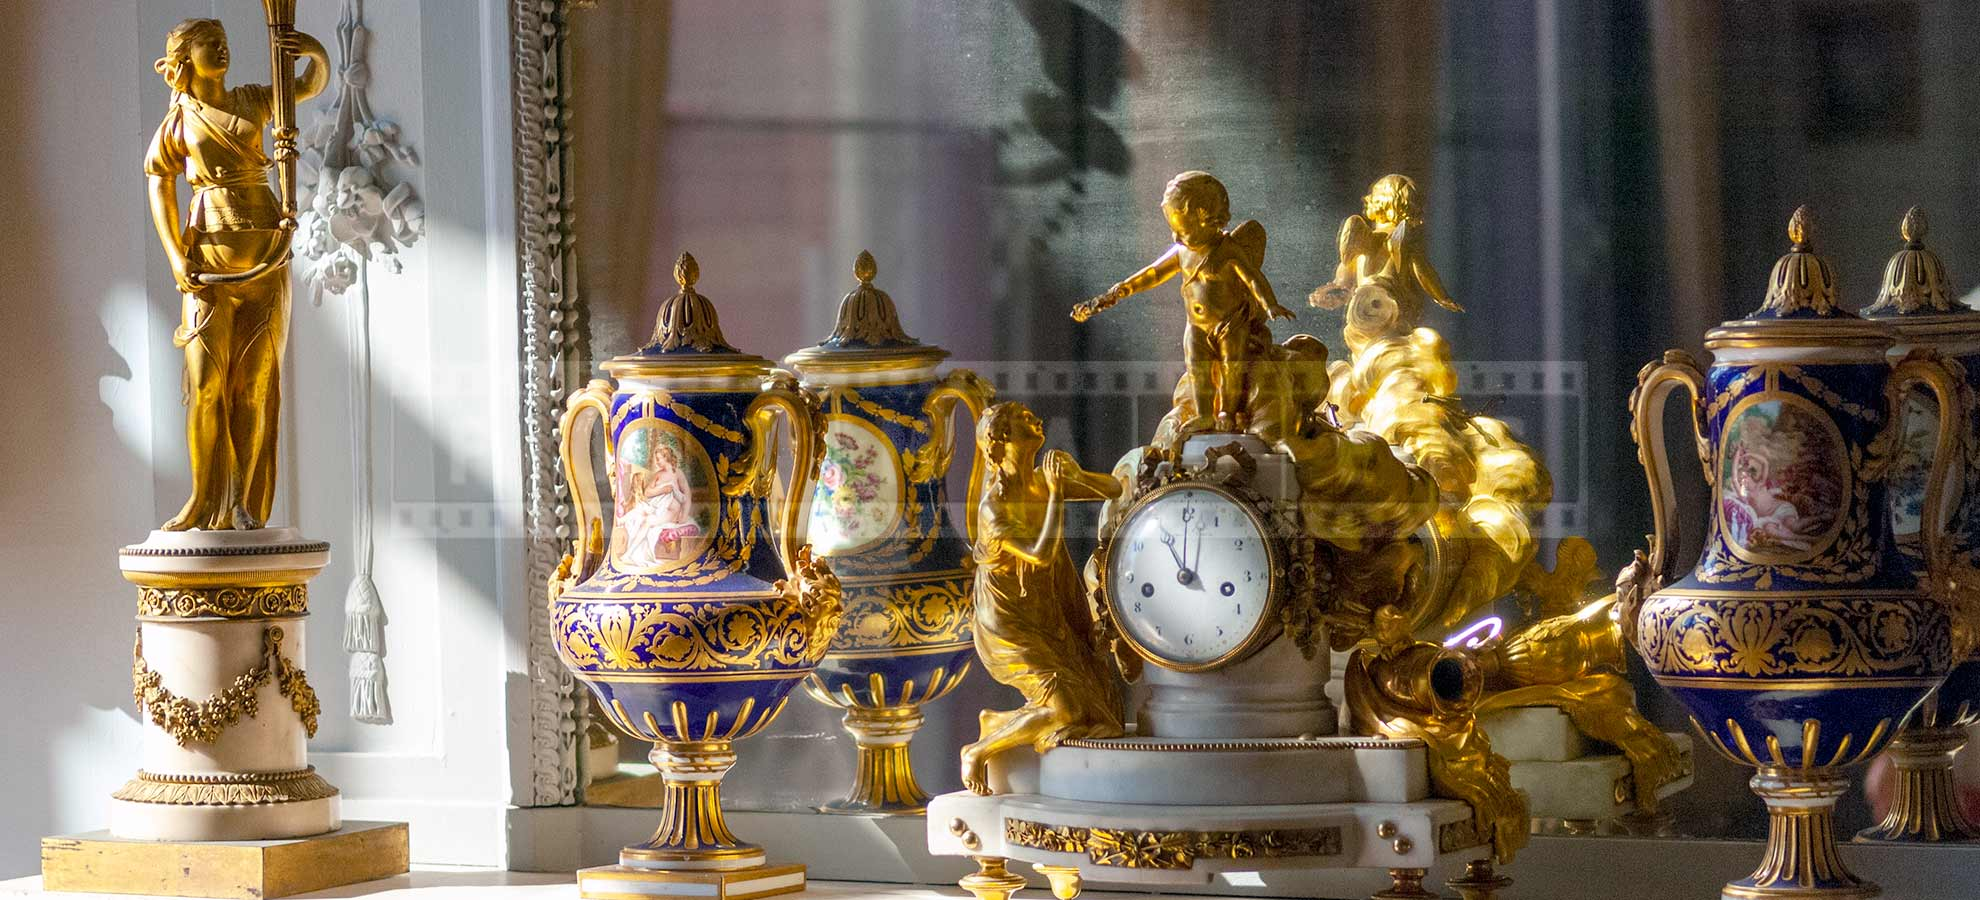 clock in front of a mirror surrounded by two vases